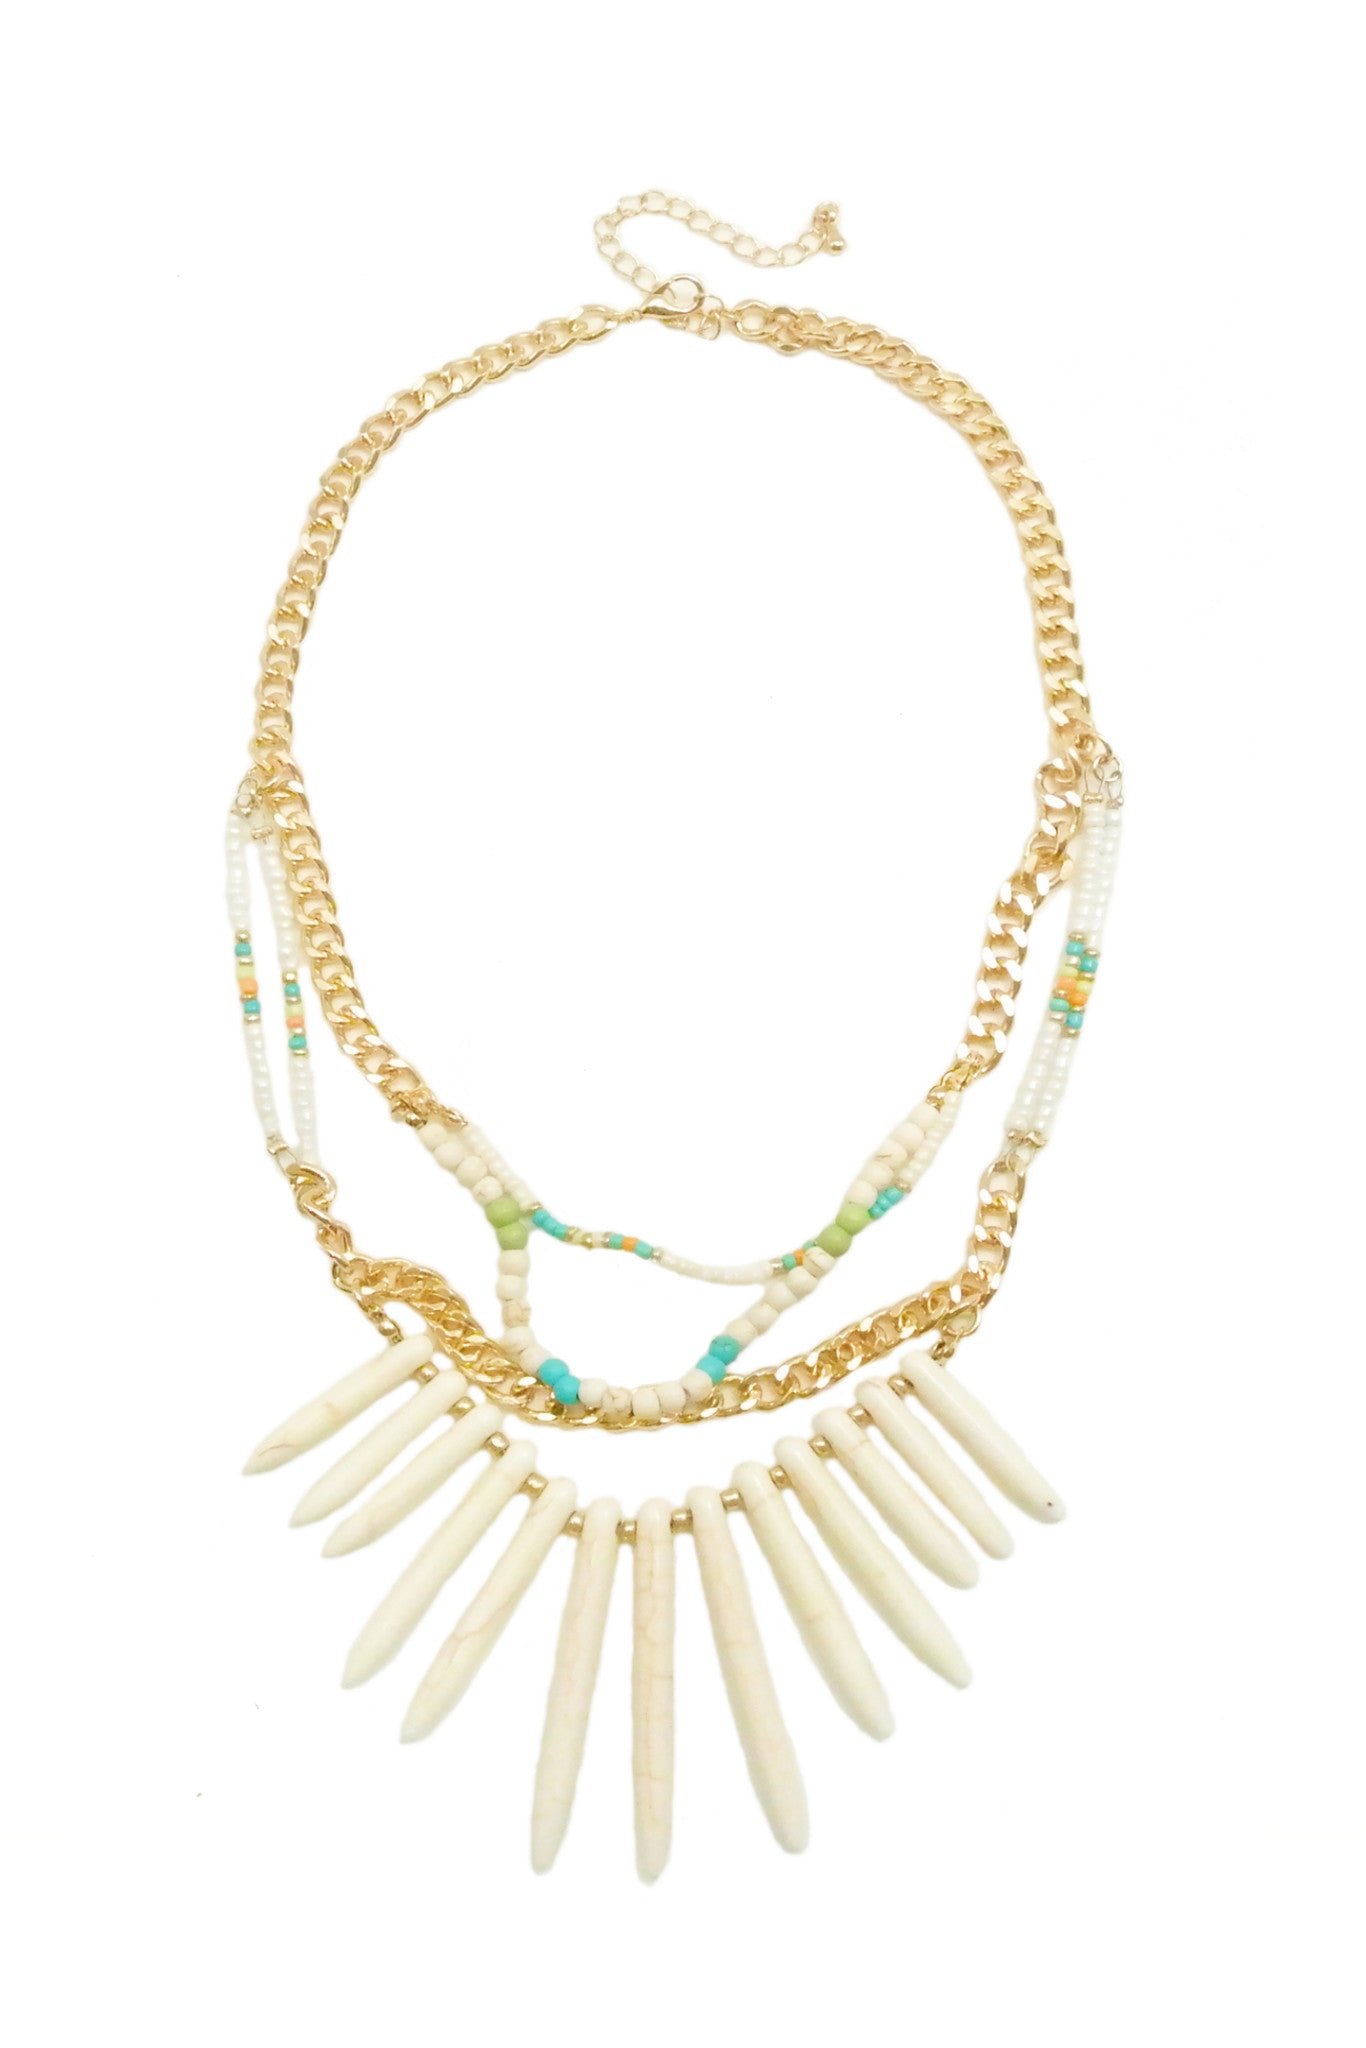 Tribal Spears Necklace - White